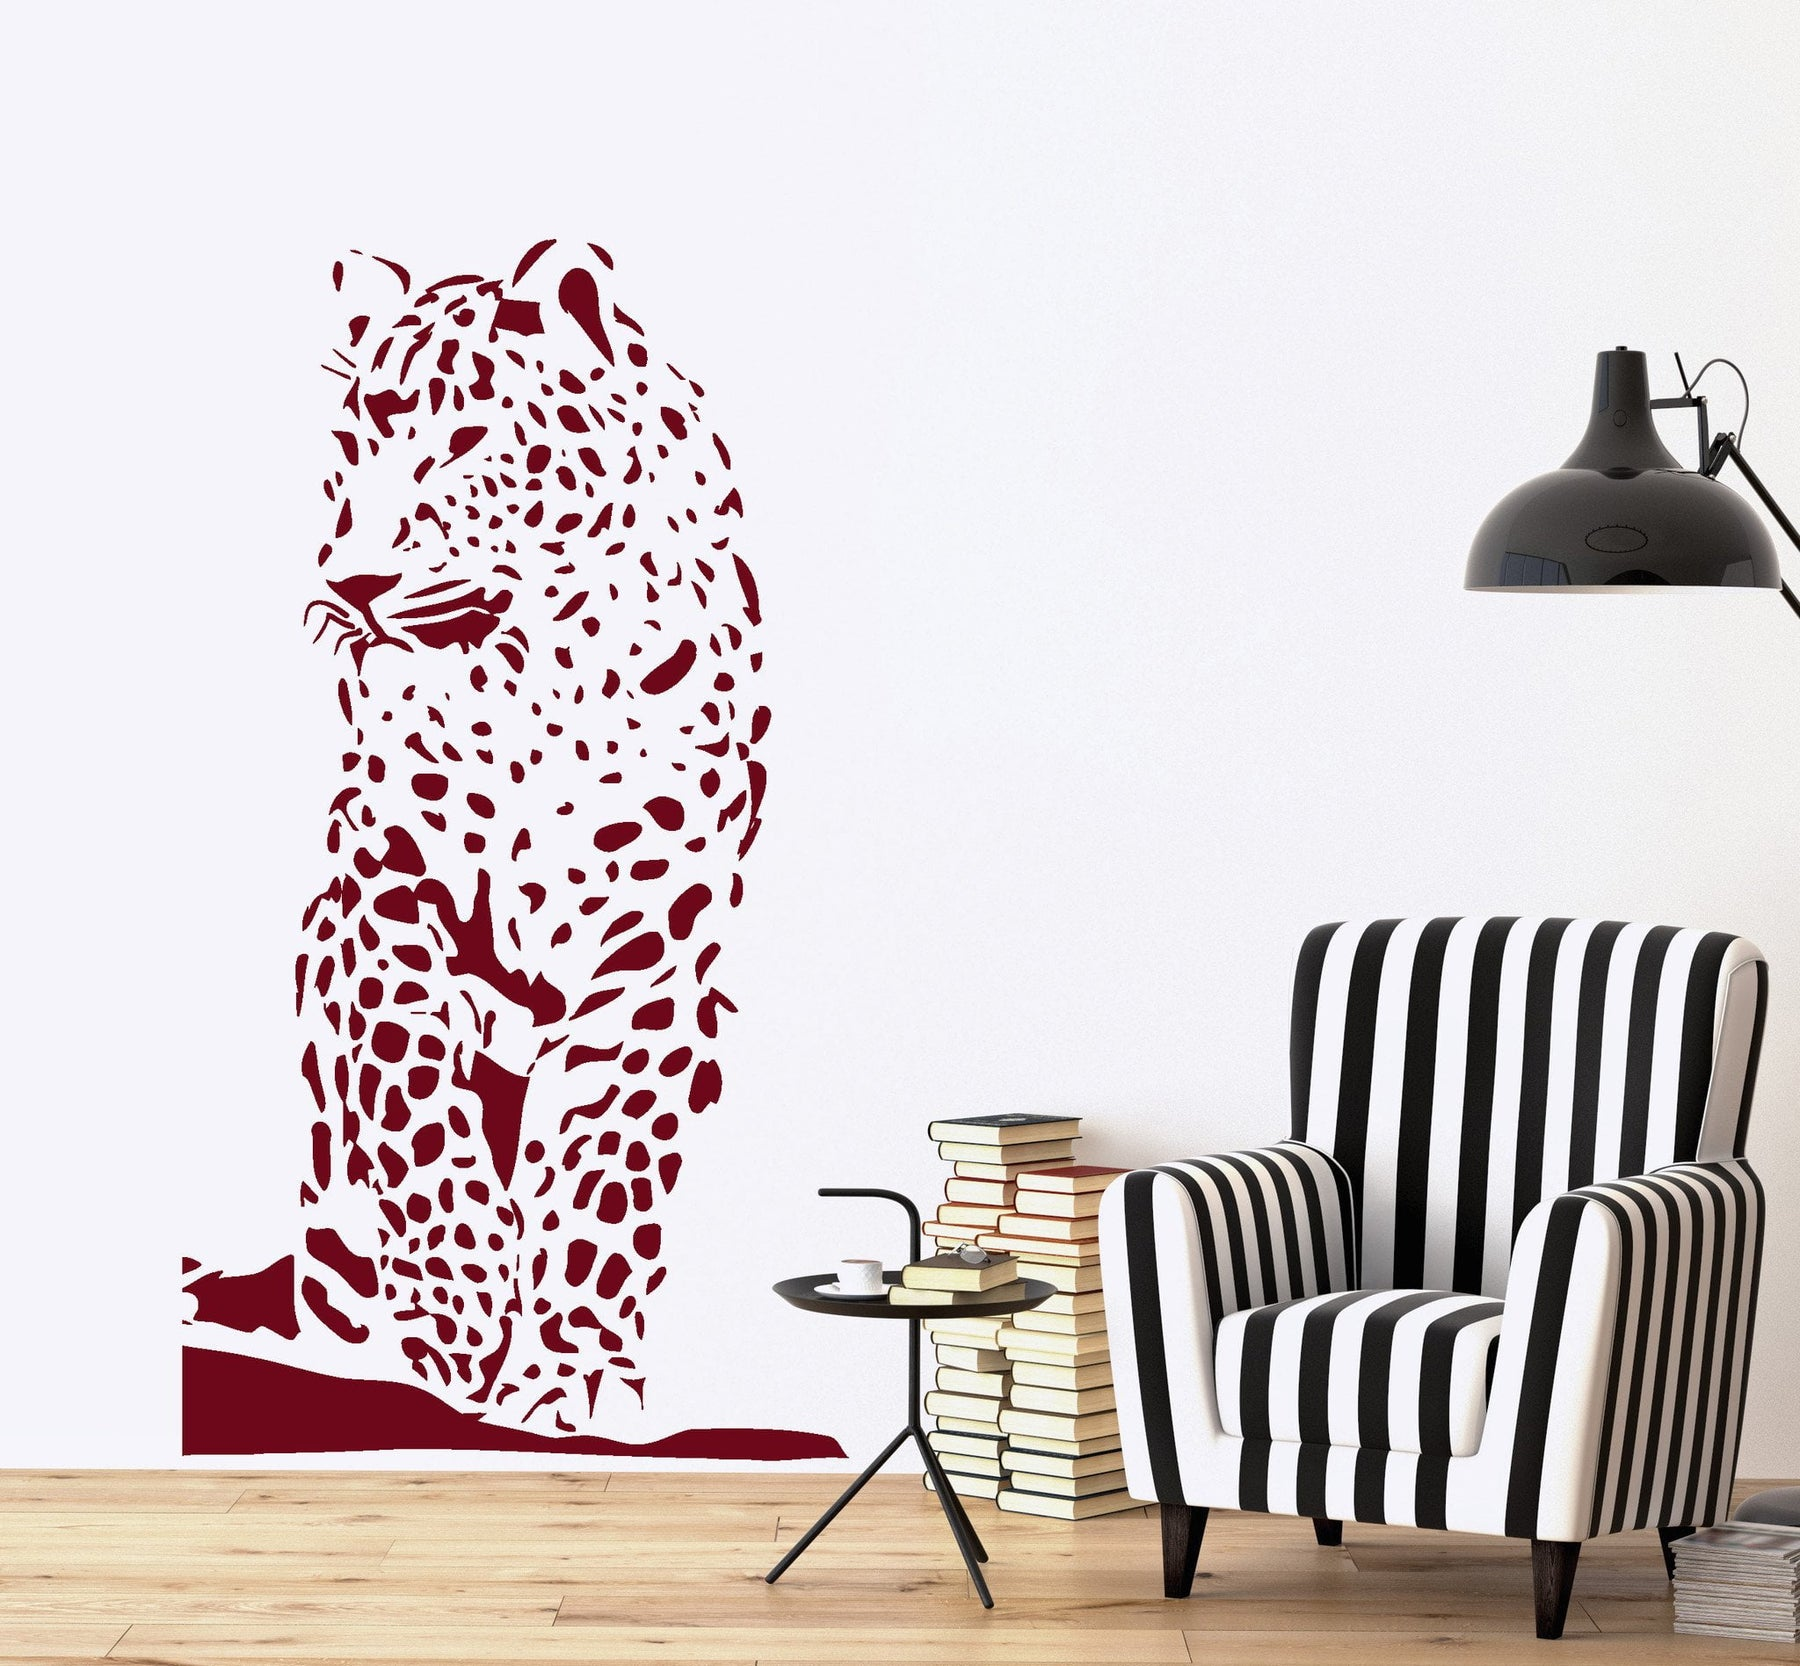 Wall Vinyl Decal Tiger Ethnic Decor Jungle African Sticker Unique Gift z3661